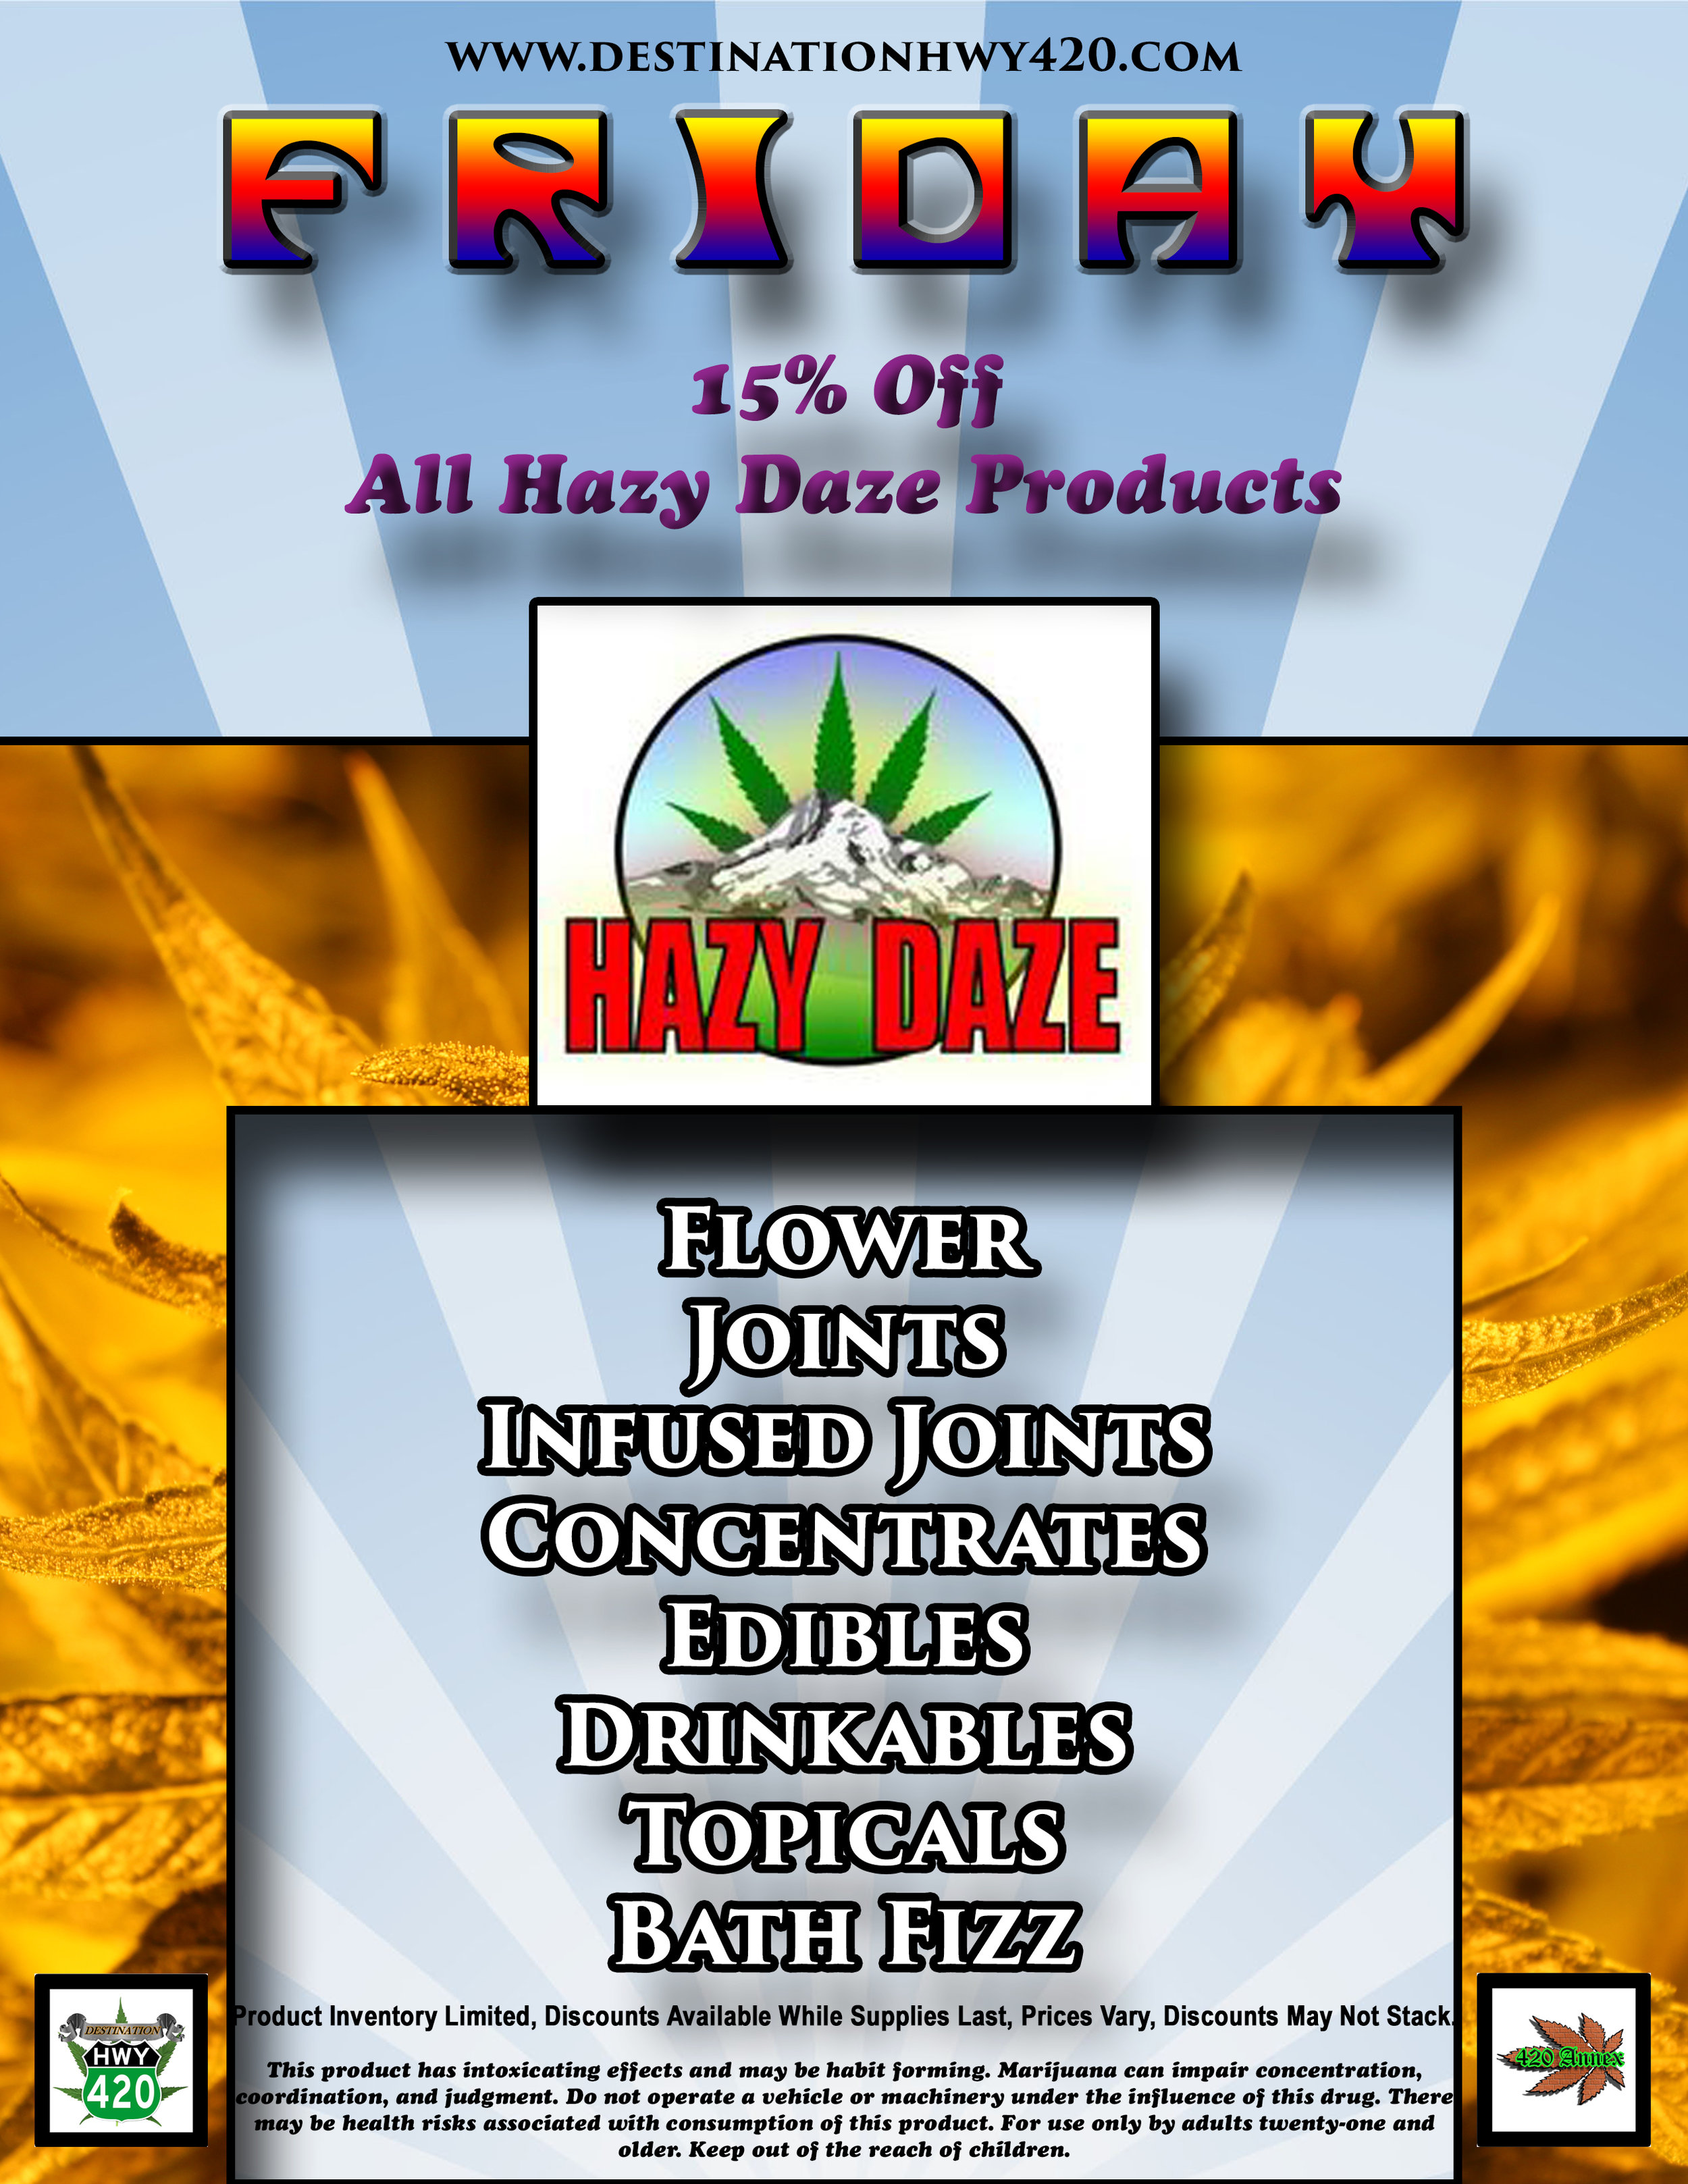 Every Friday, all Hazy Daze Marijuana Products are 15% Off! Hazy Daze produces marijuana flower, prerolled joints, edibles, topicals, drinkables, and concentrates. Haze Daze is based out of Belfair, WA.